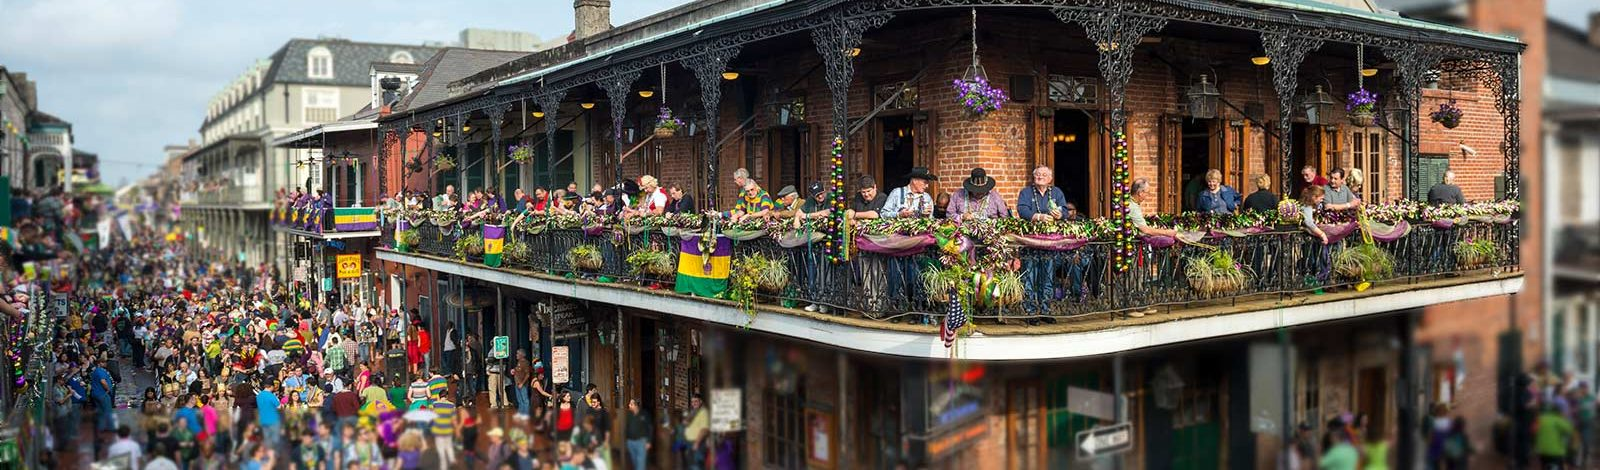 Calendar Of Events New Orleans 2020 When is Mardi Gras 2020? | Mardi Gras New Orleans